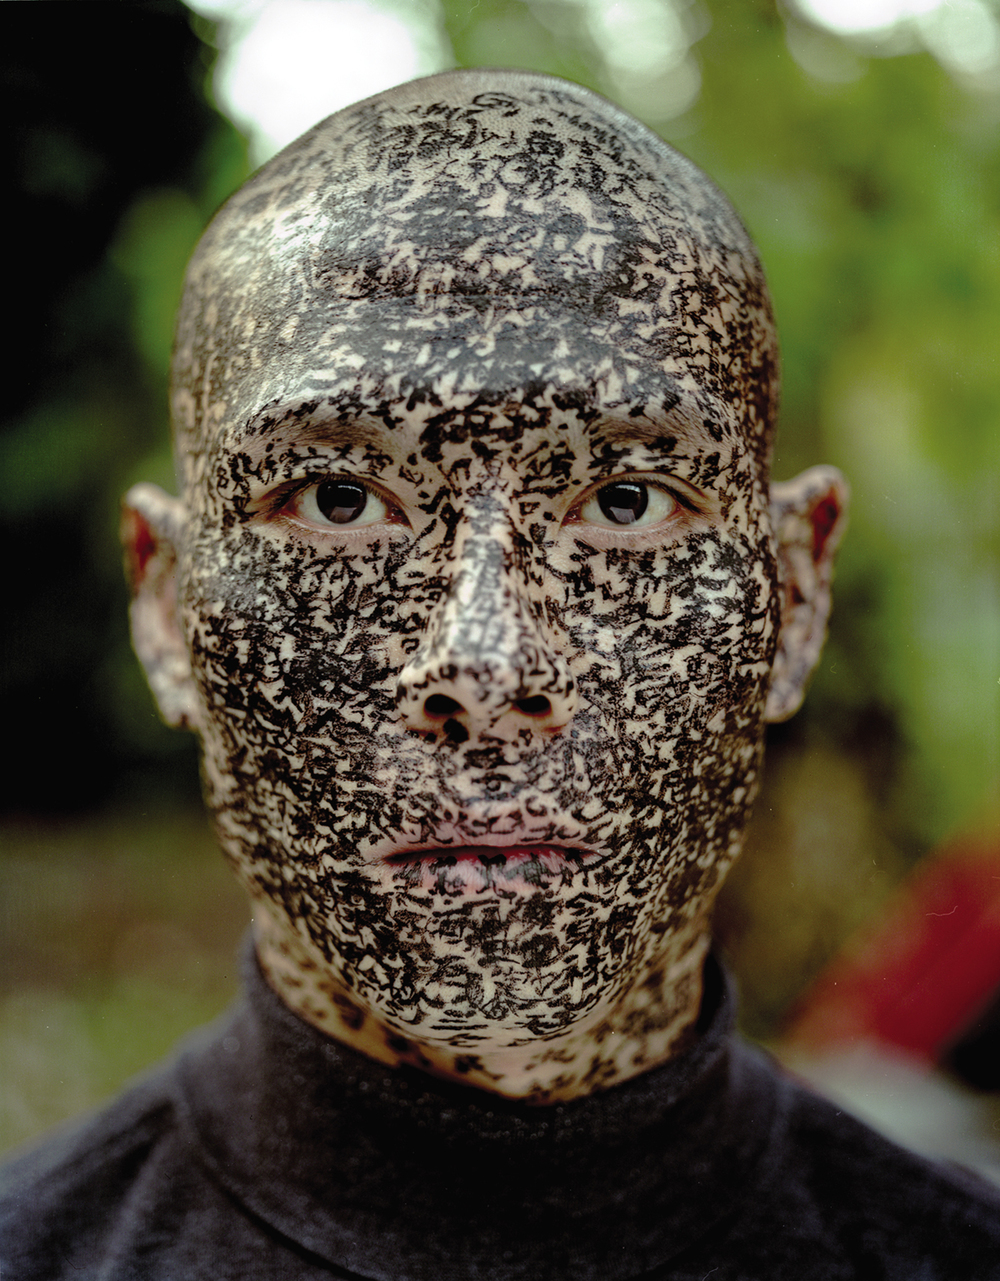 Family Tree, Zhang Huan